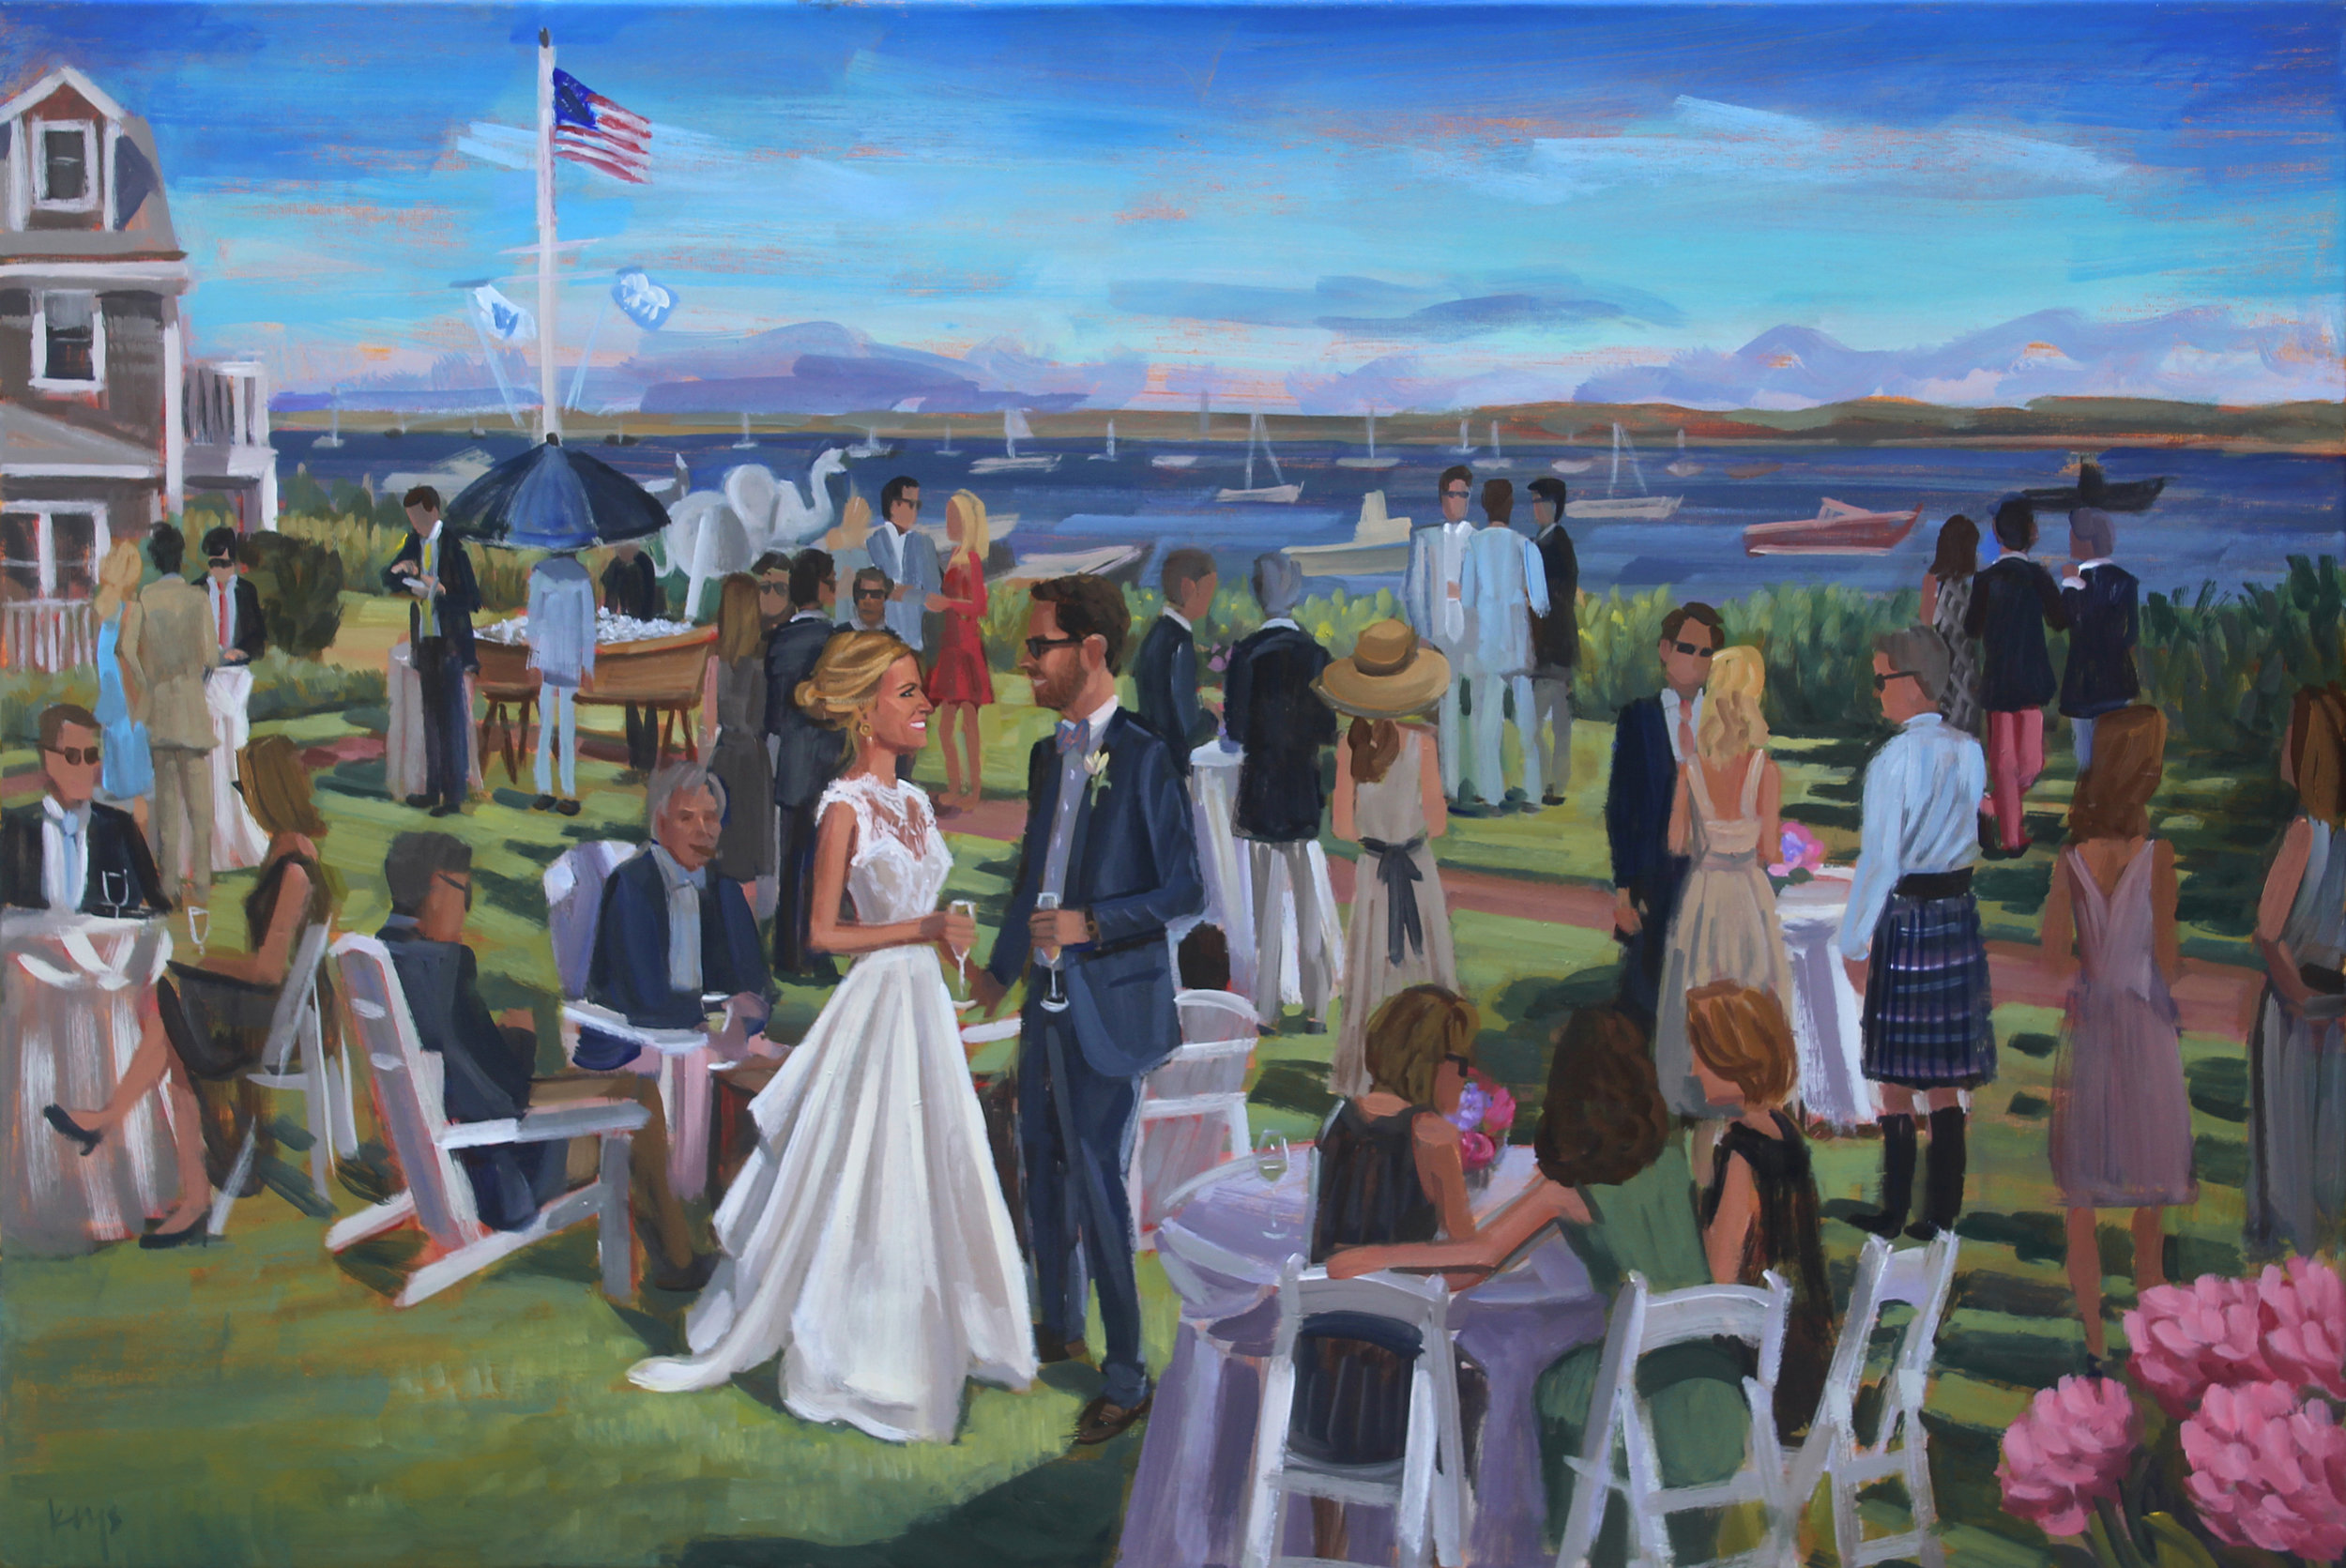 Live Wedding Painting at The White Elephant, Nantucket, MA